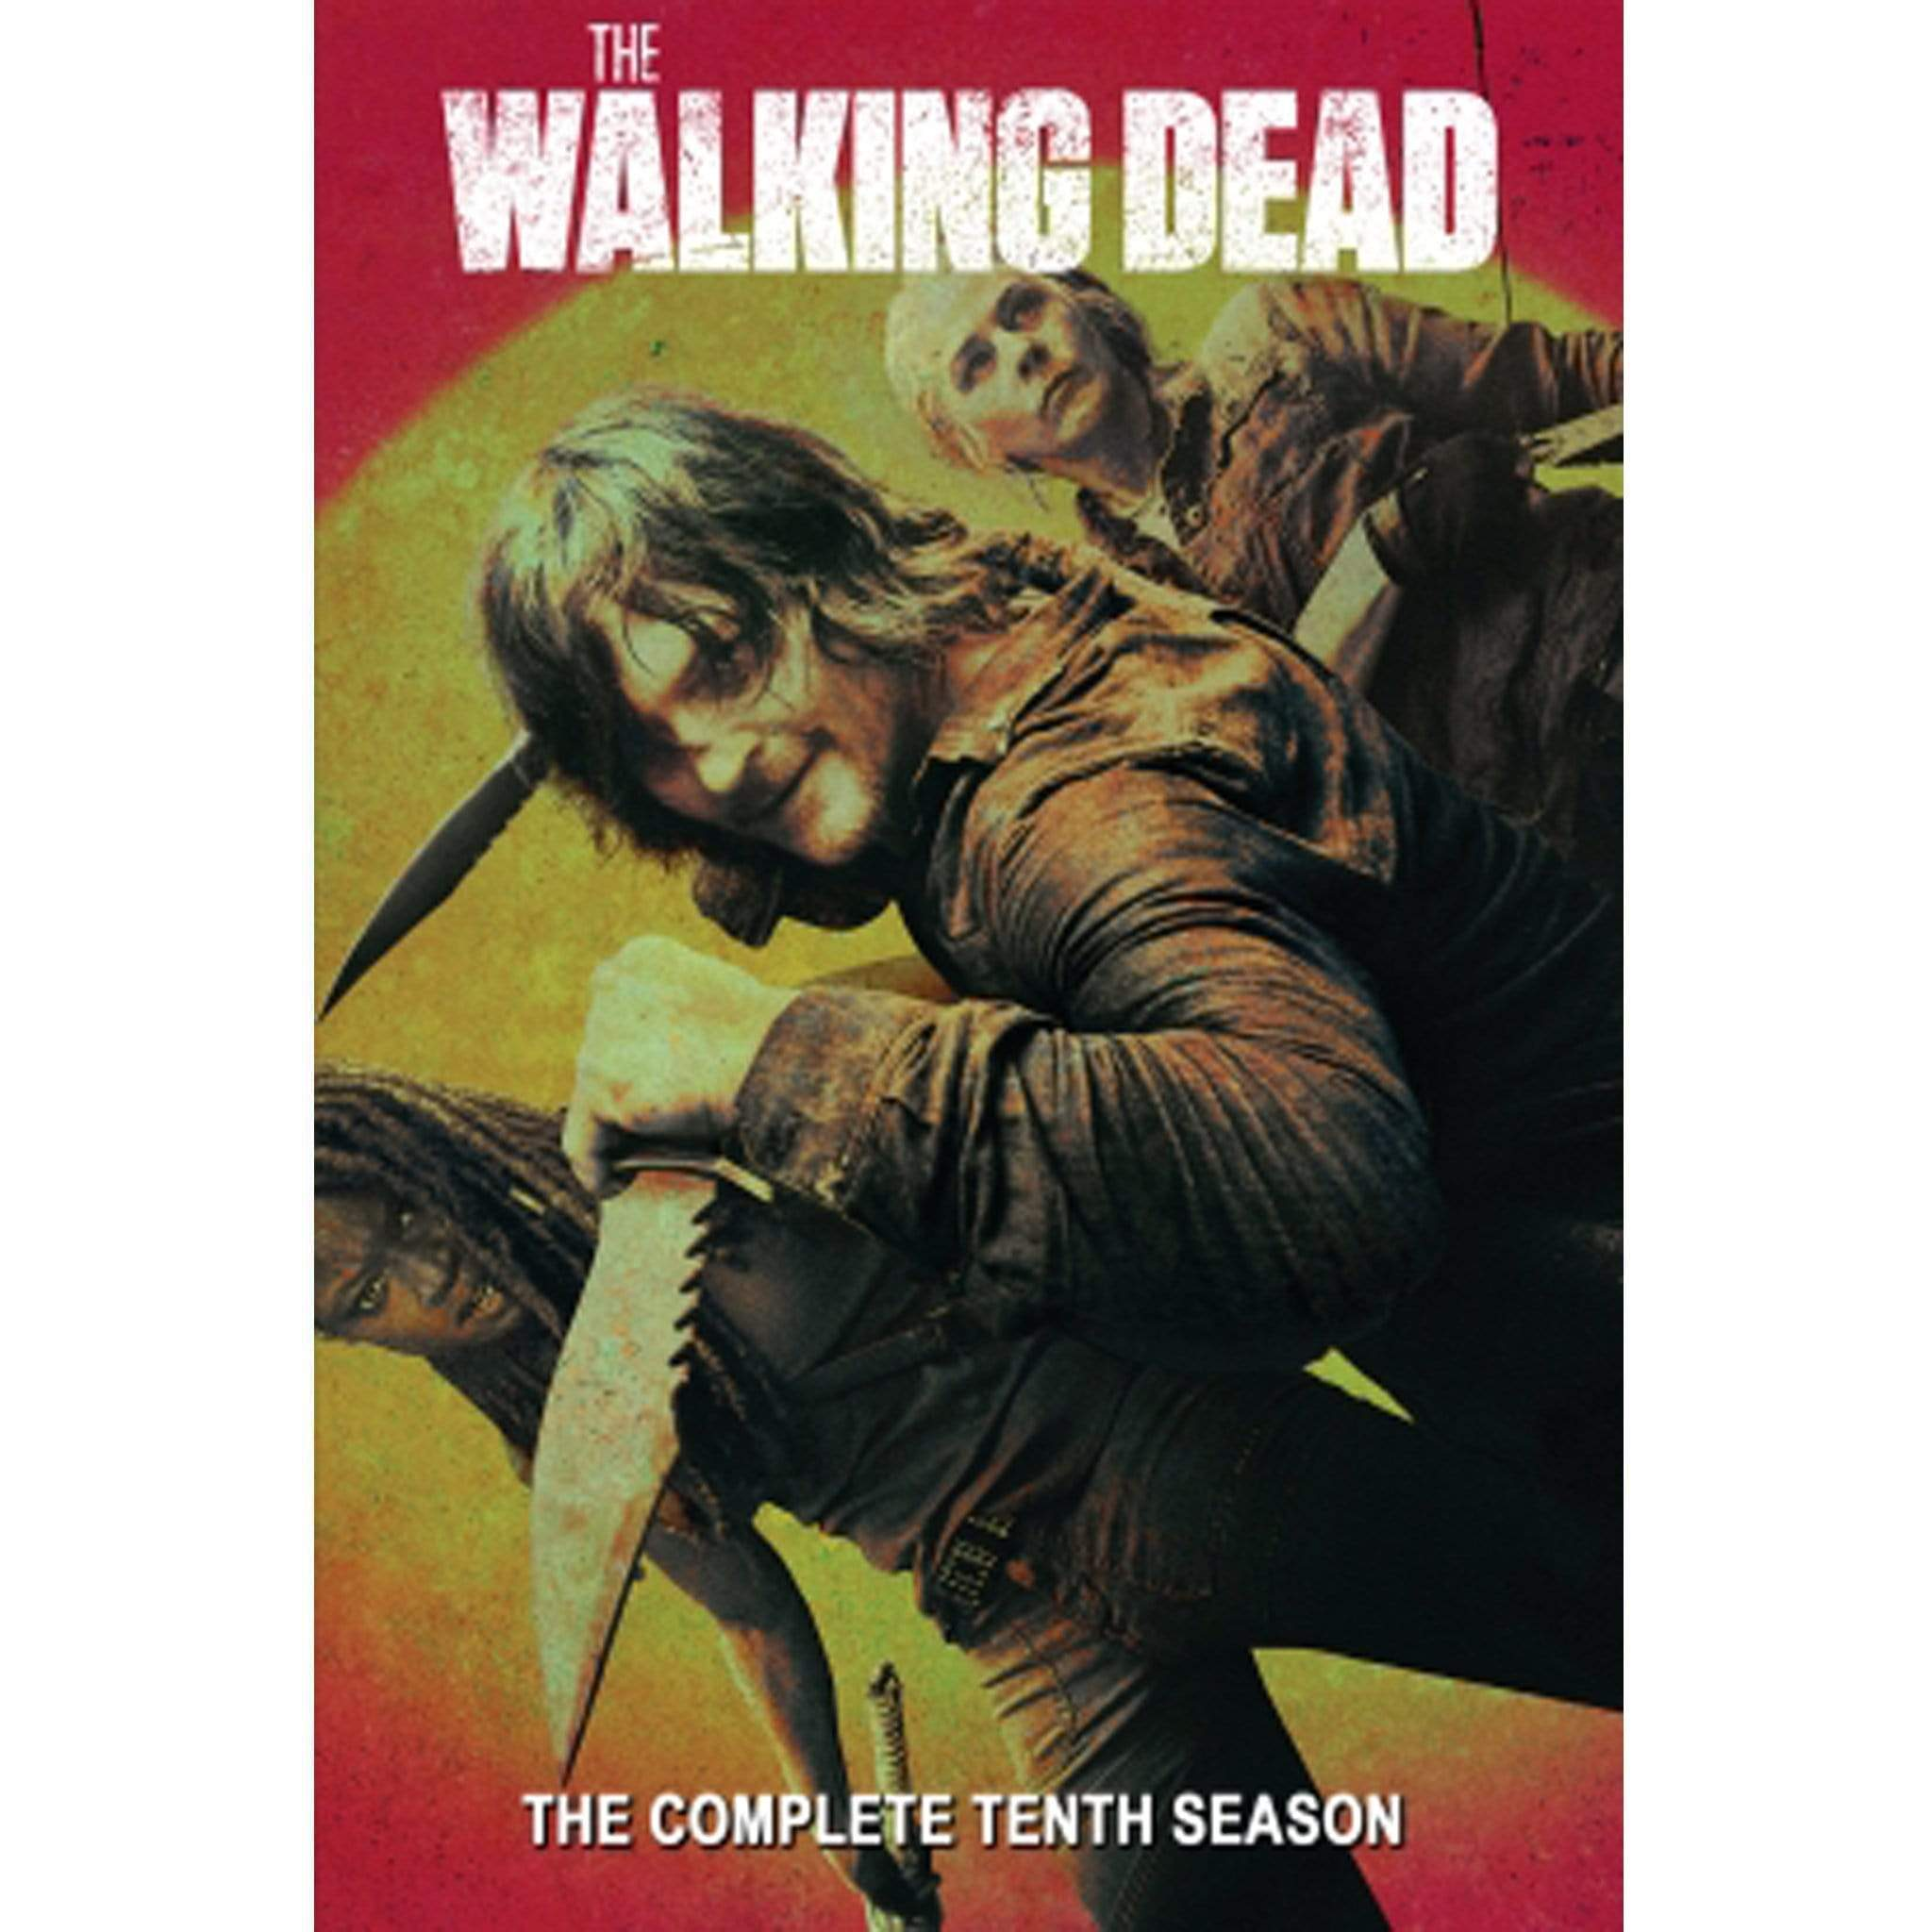 Walking Dead Season 10 DVD AMC DVDs & Blu-ray Discs